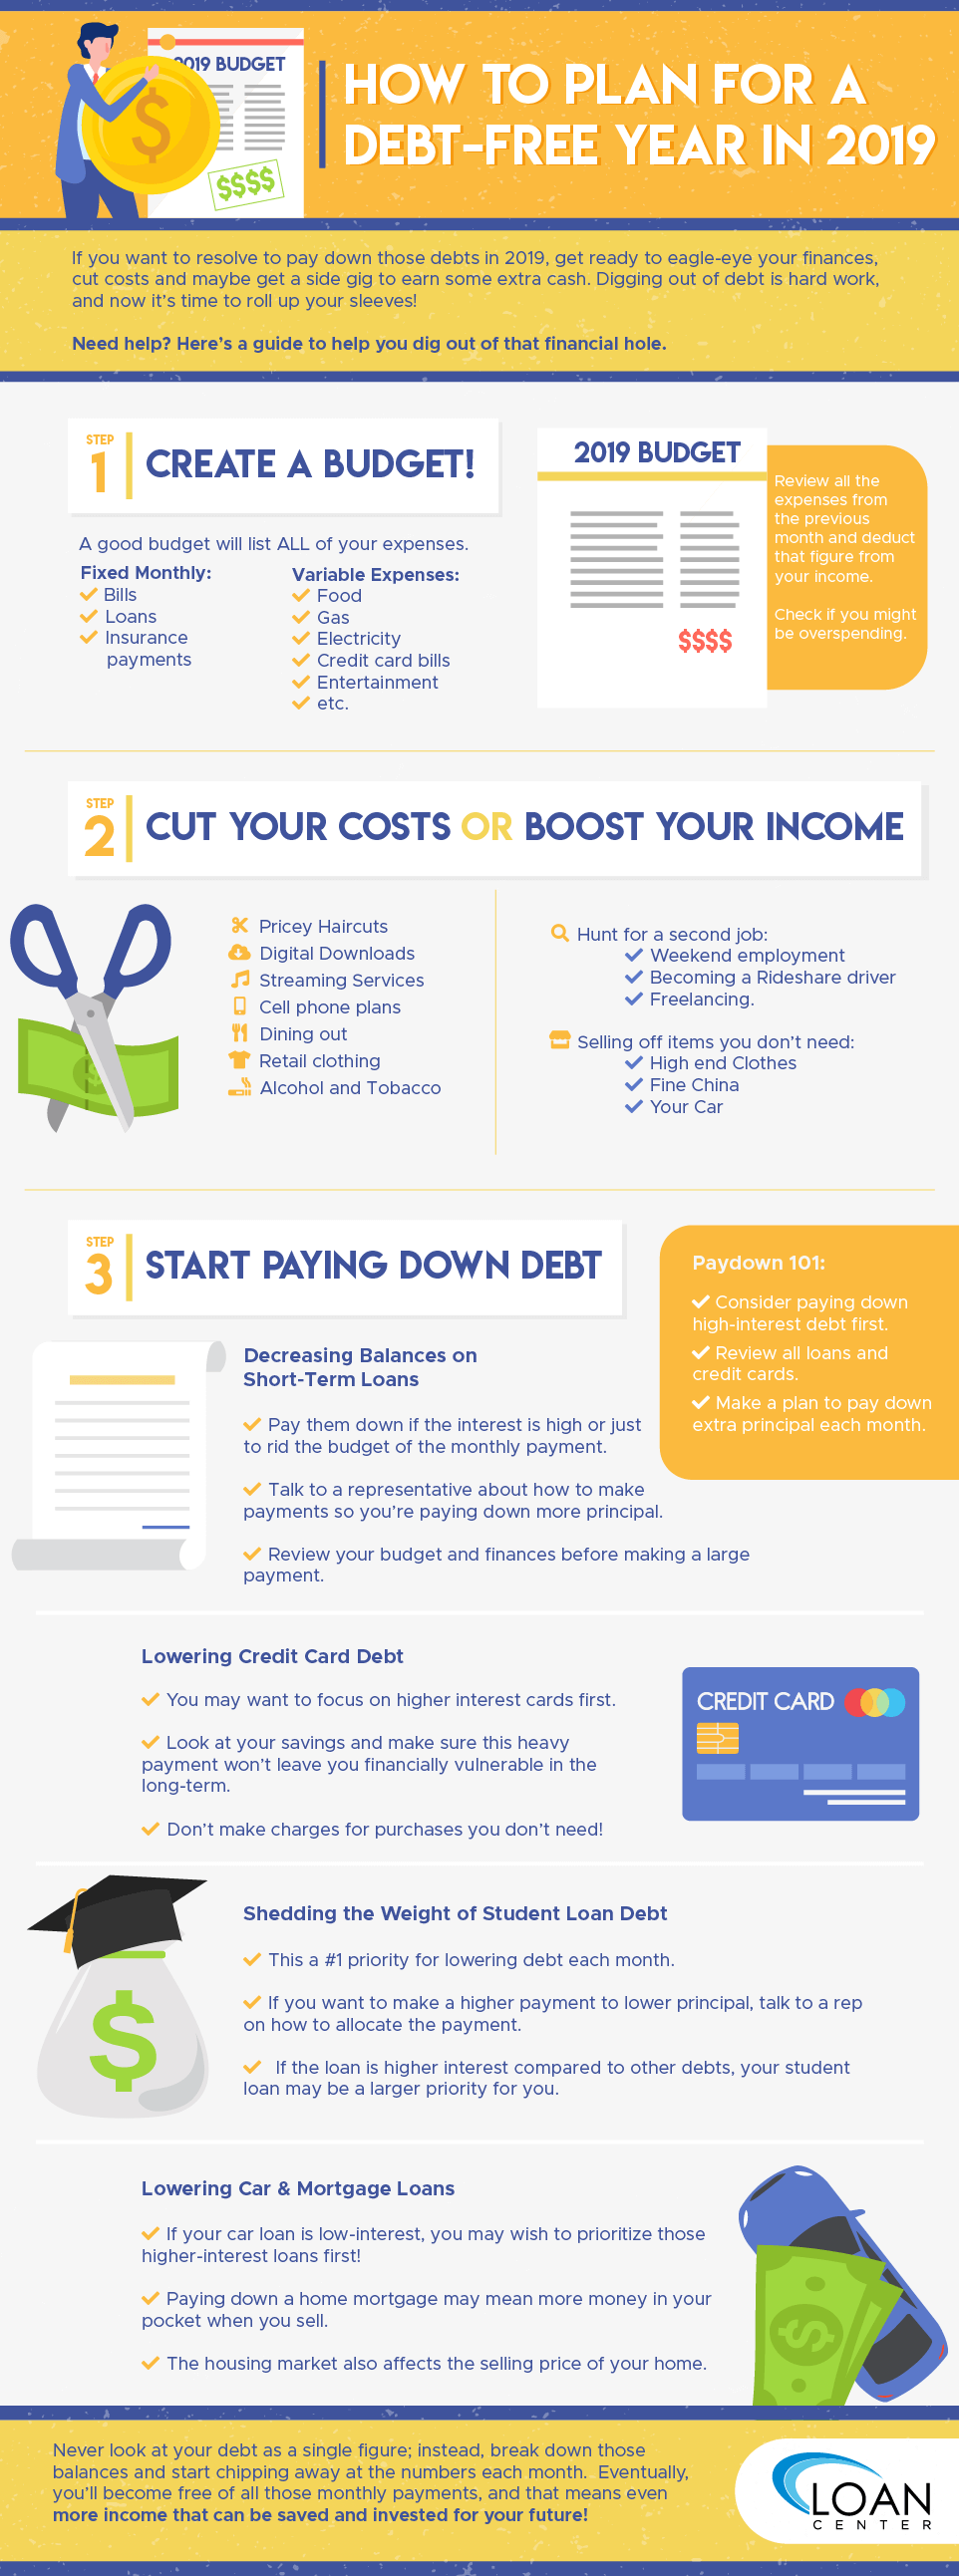 How to Plan for a Debt Free Year in 2019